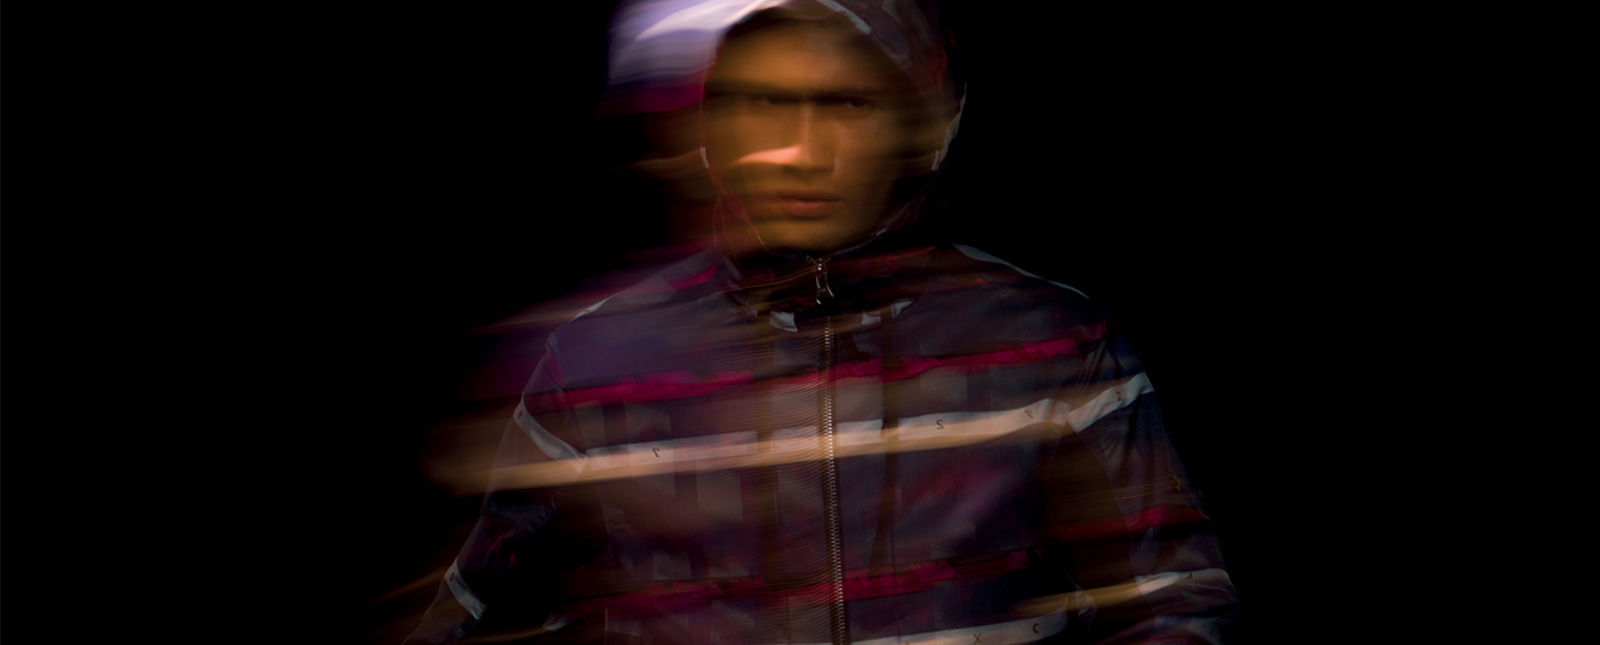 Blurred portrait of model wearing dark colored hooded jacket with white, black and red stripes and zipper closure.